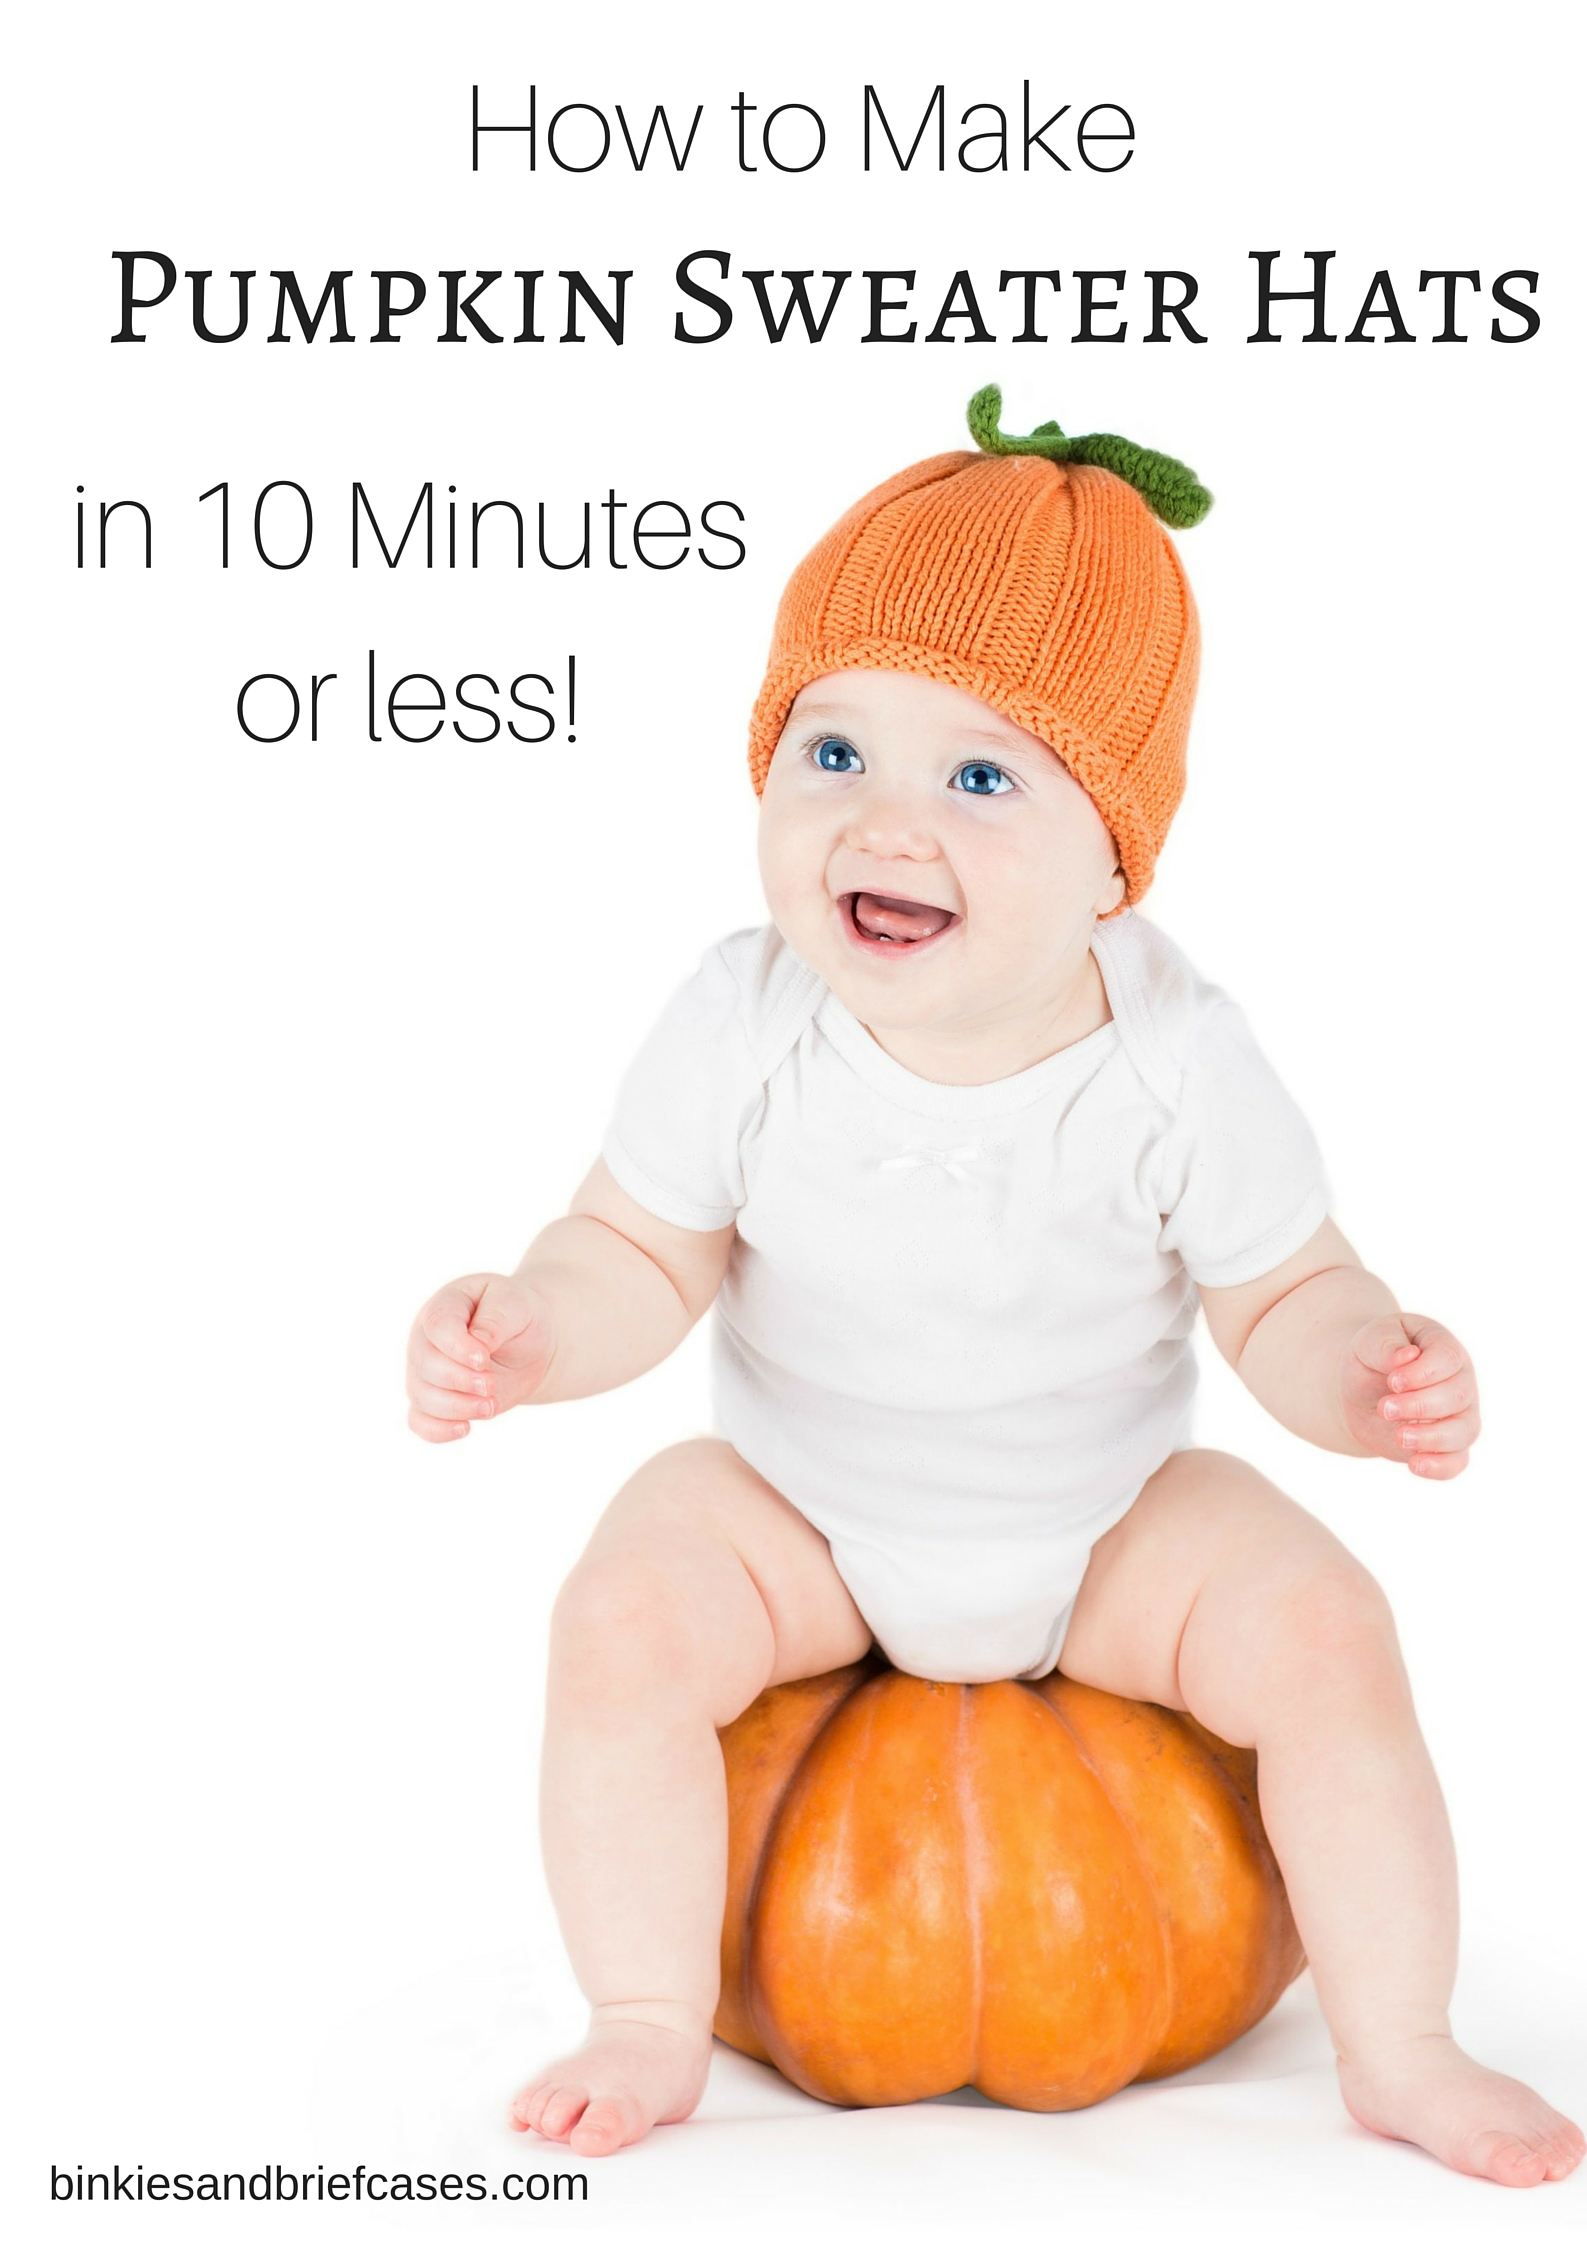 How to make adorable pumpkin sweater hats in less than ten minutes out of upcycled sweaters